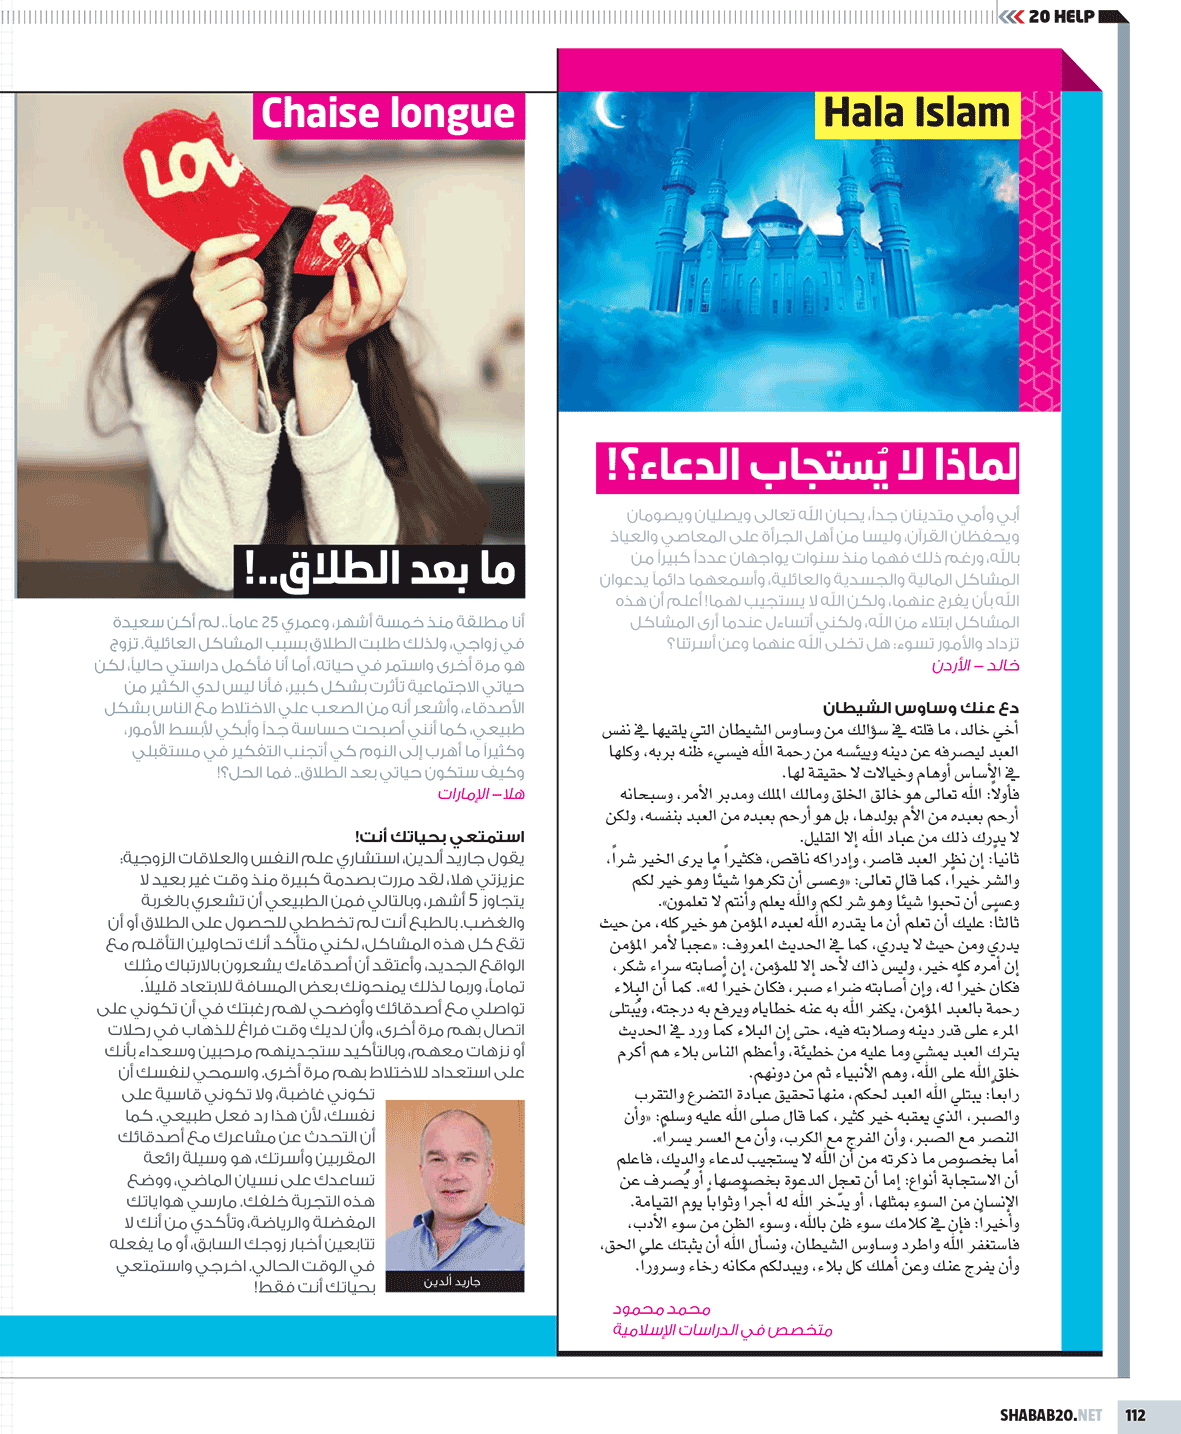 Dubai Counsellor Jared - featured in Al Sada Magazine